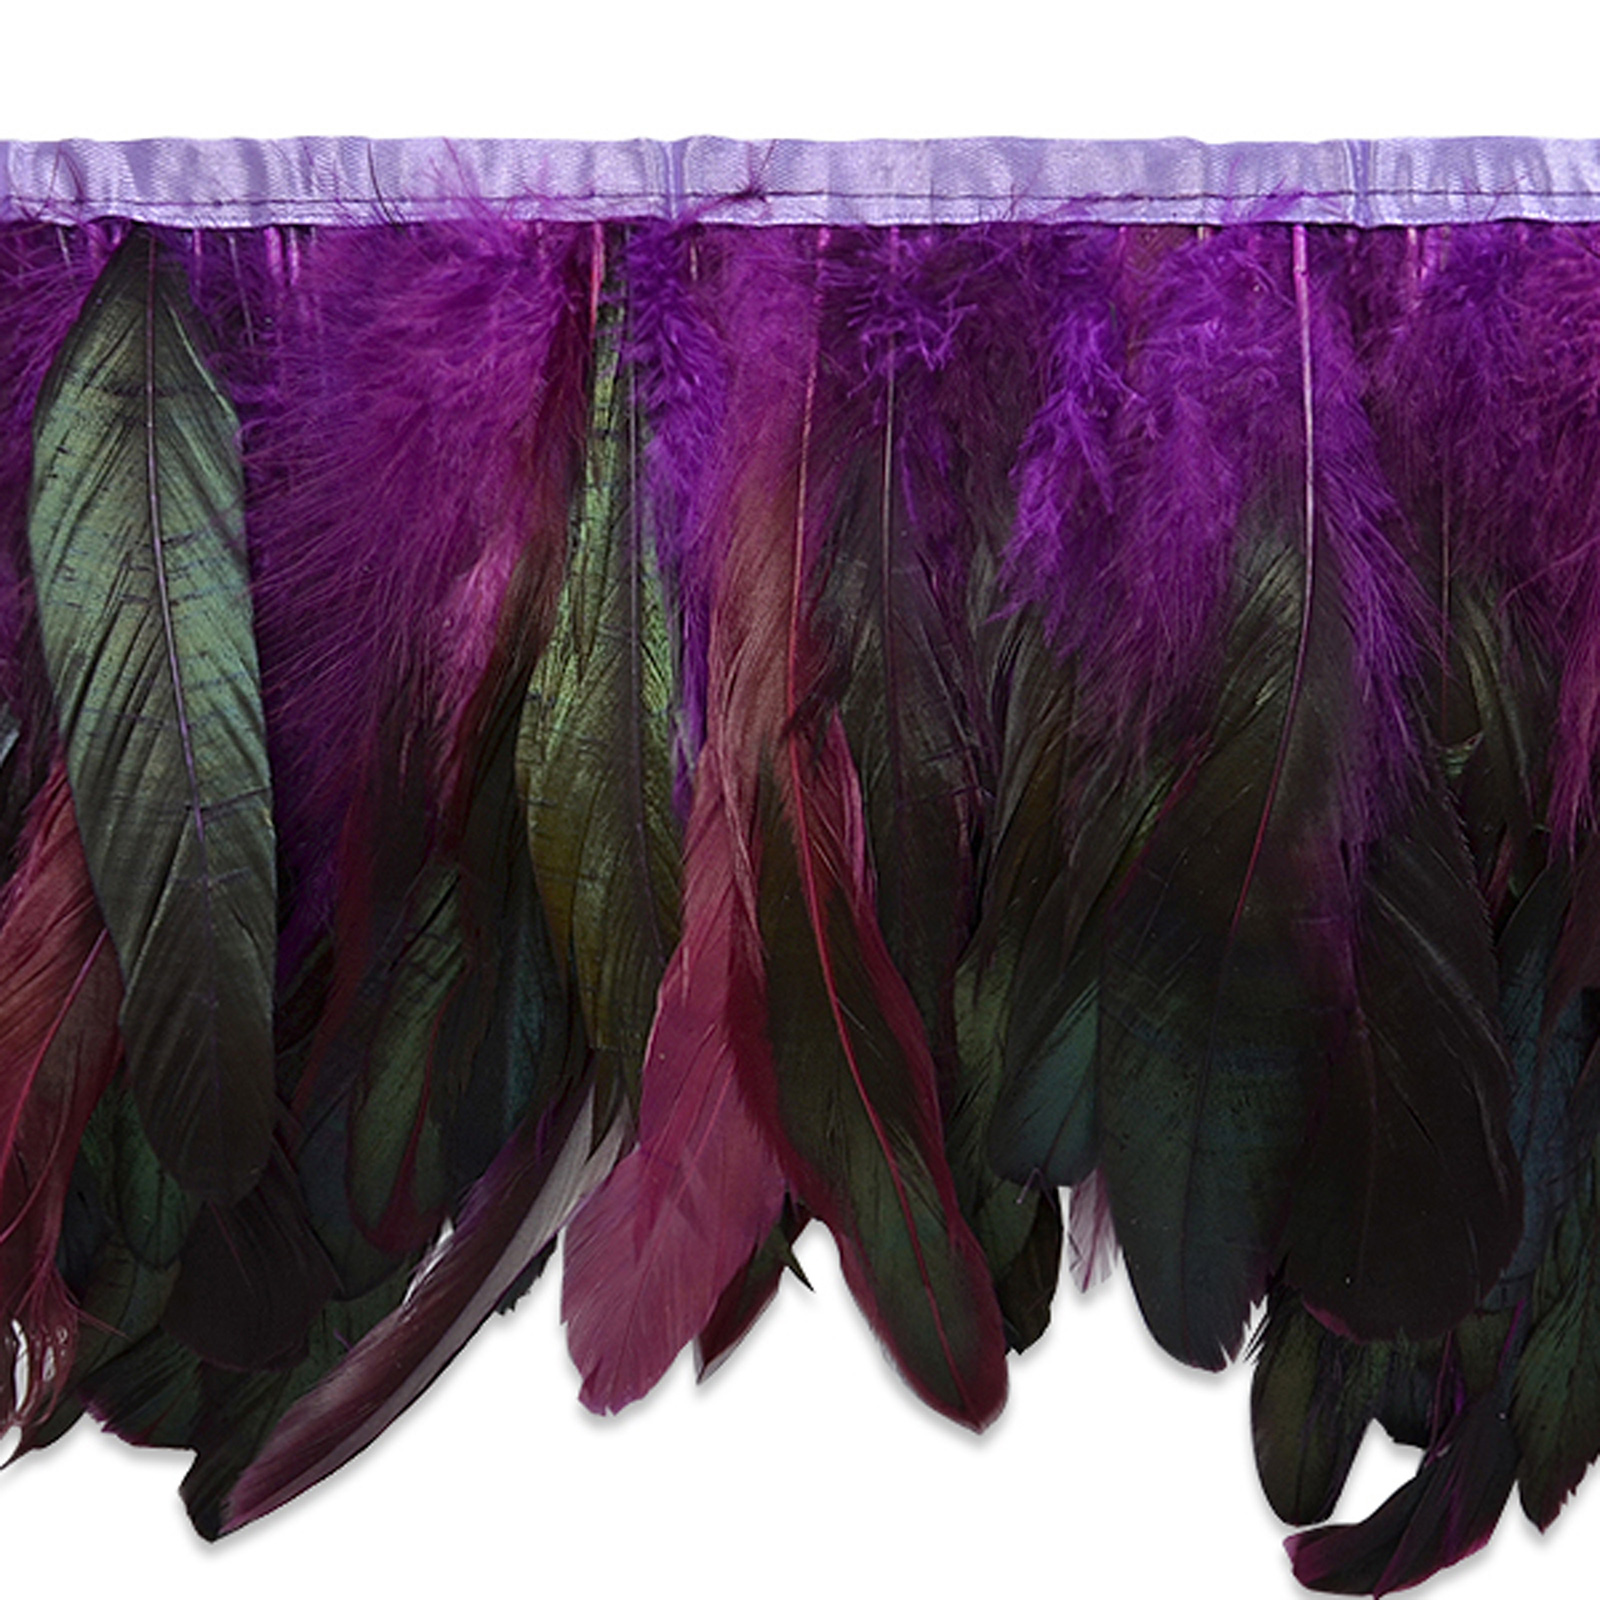 6'' Fionna Feather Trim Purple by Expo in USA